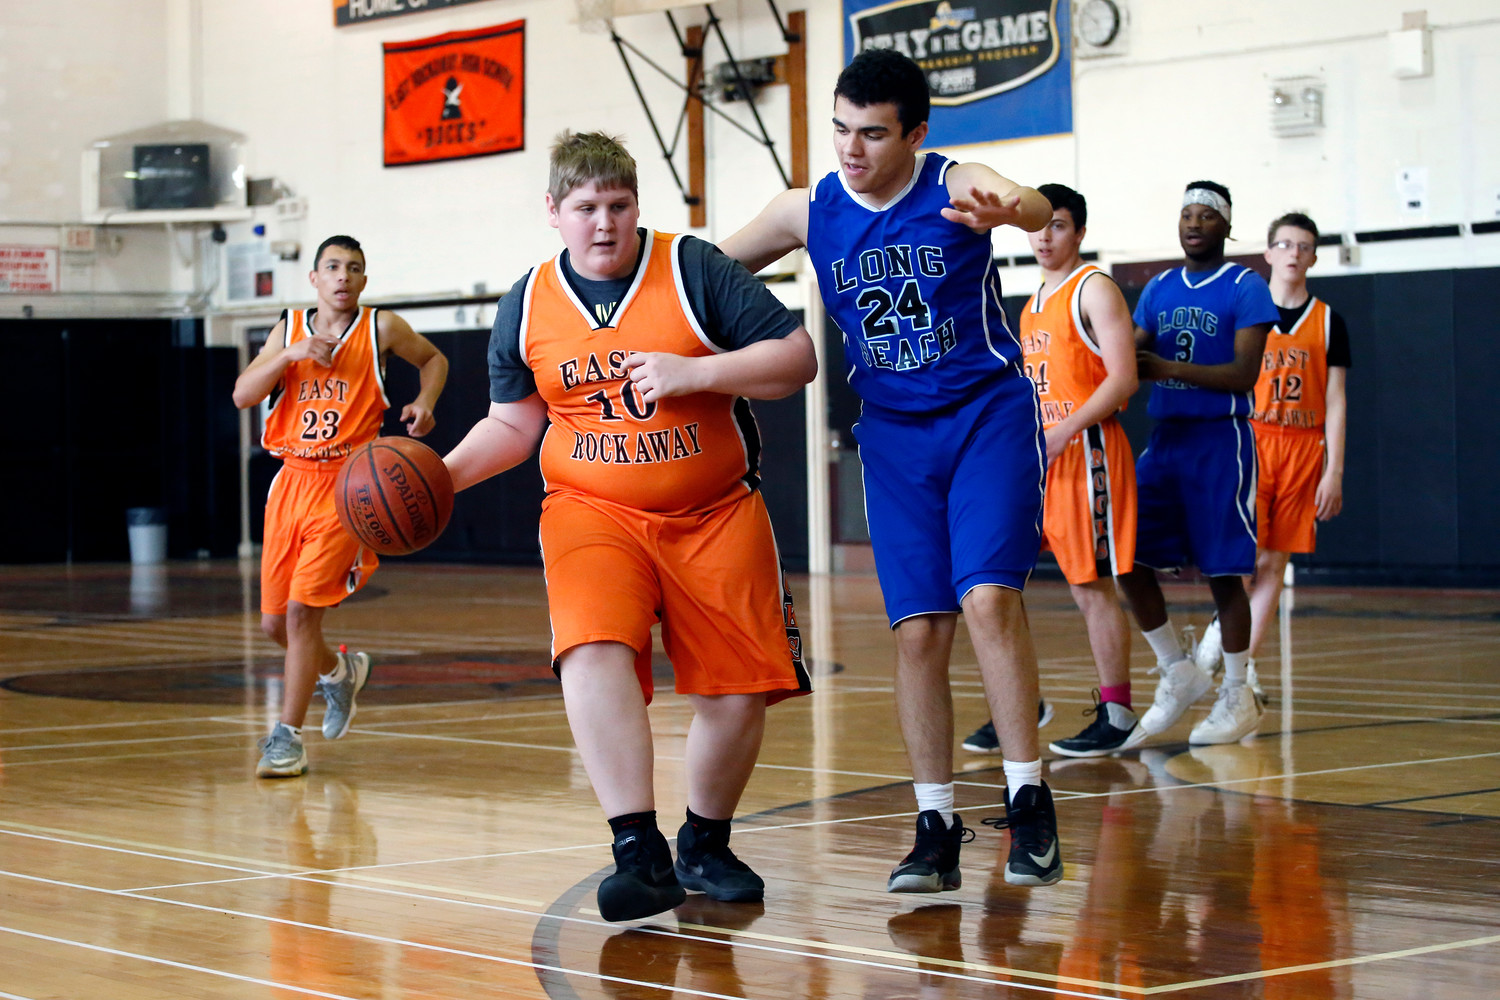 The unified basketball team comprises special needs students as well as students in the general education program.